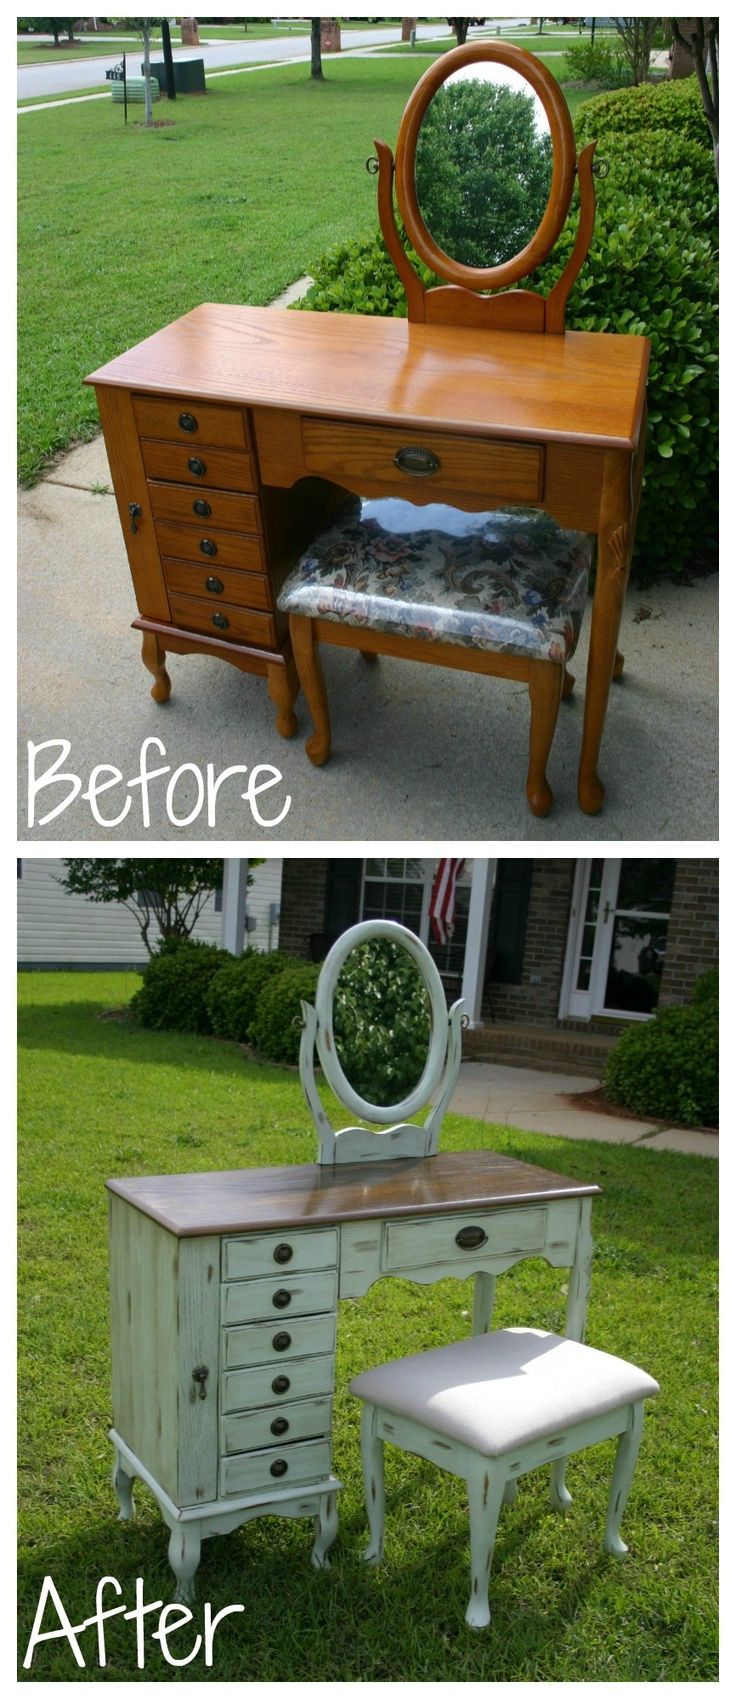 Distressed Mint Refinished Vanity https://www.facebook.com/BleakToChicFurniture